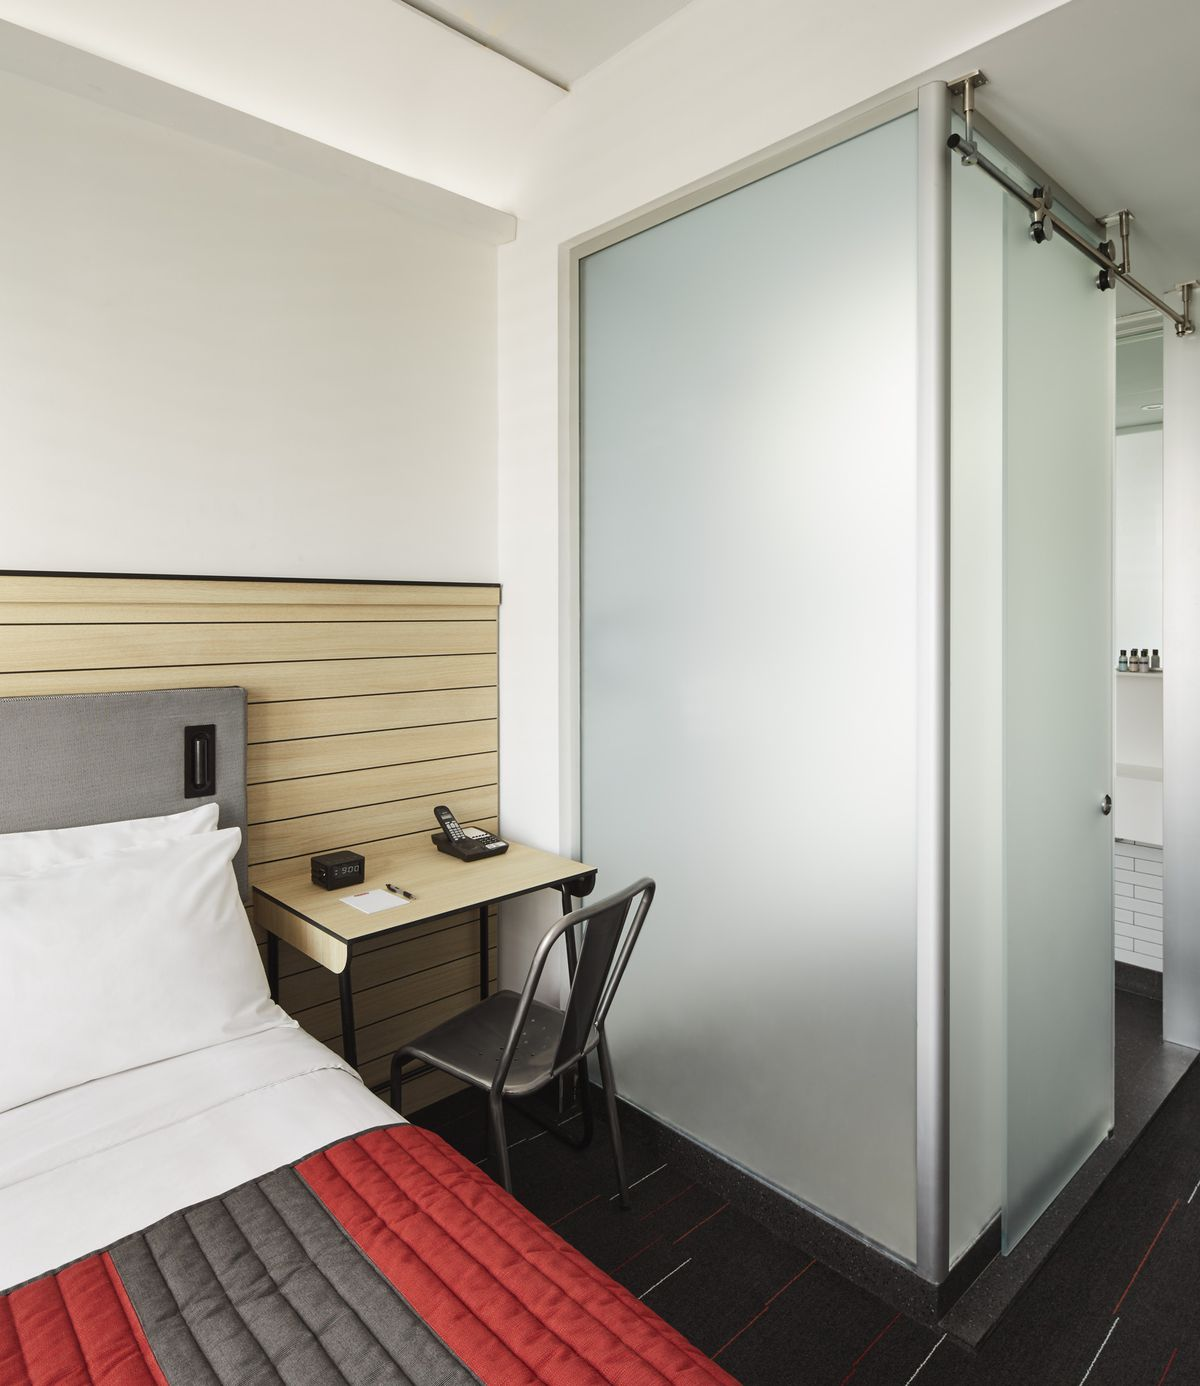 Rent Room Nyc: Pod Hotels's New Times Square Flagship Comes With 45